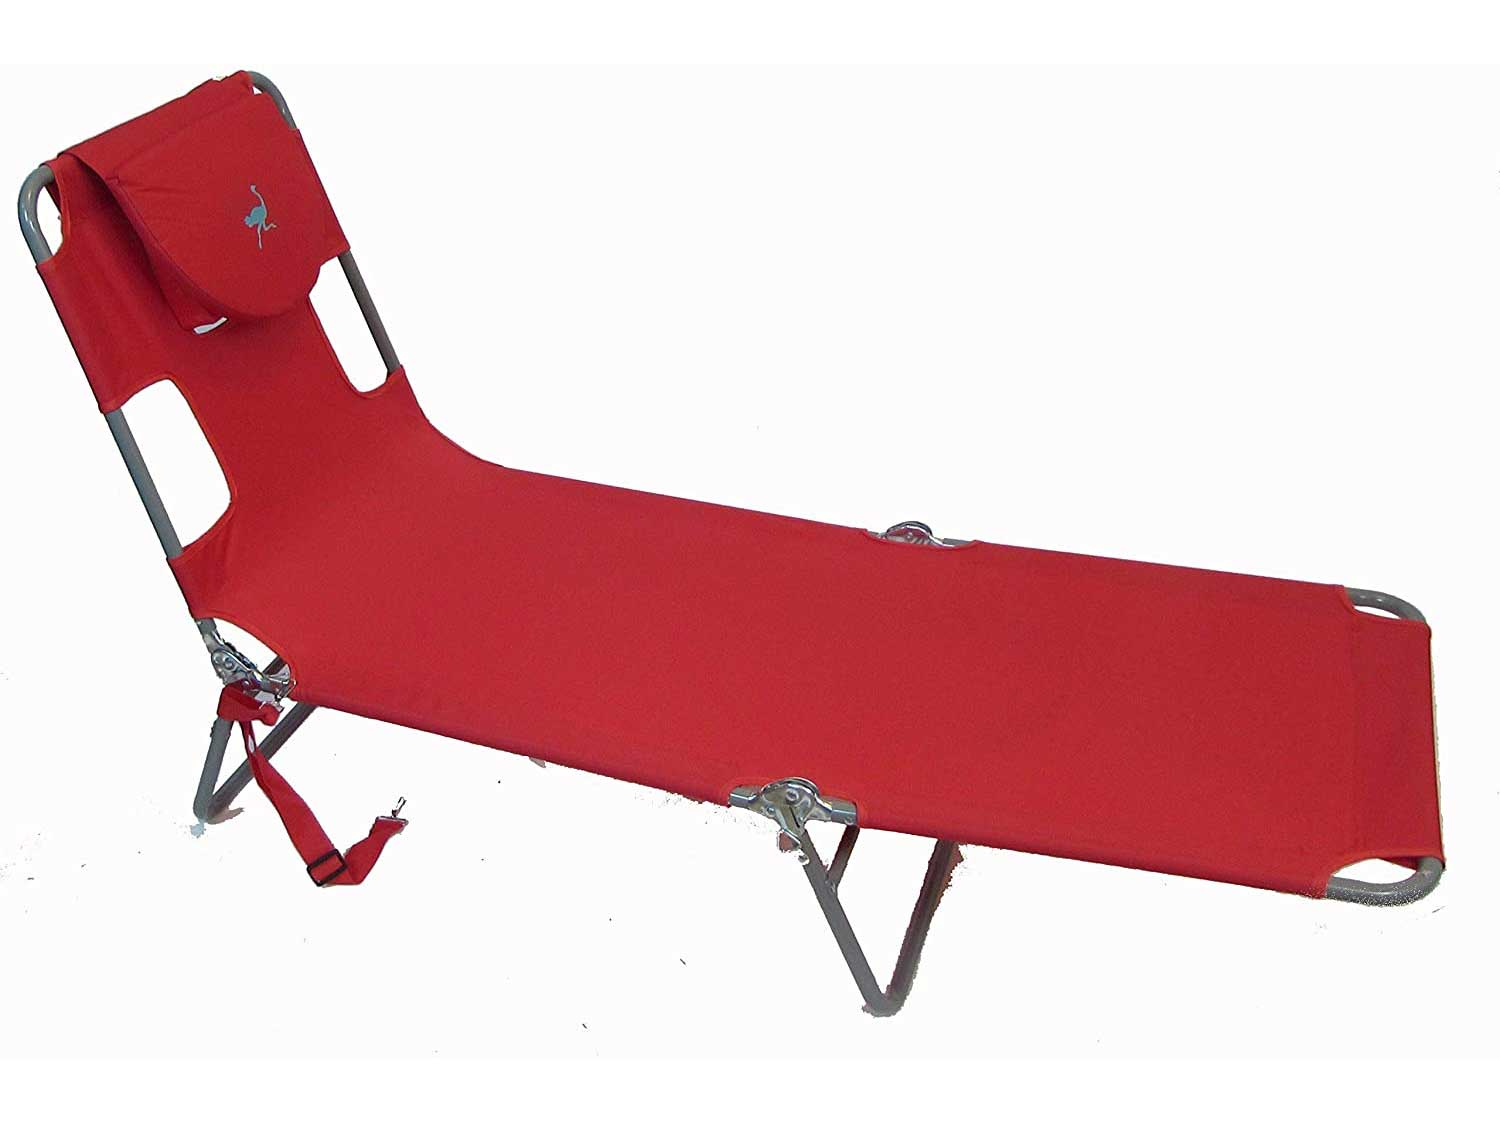 Ostrich Chaise Lounge, Red